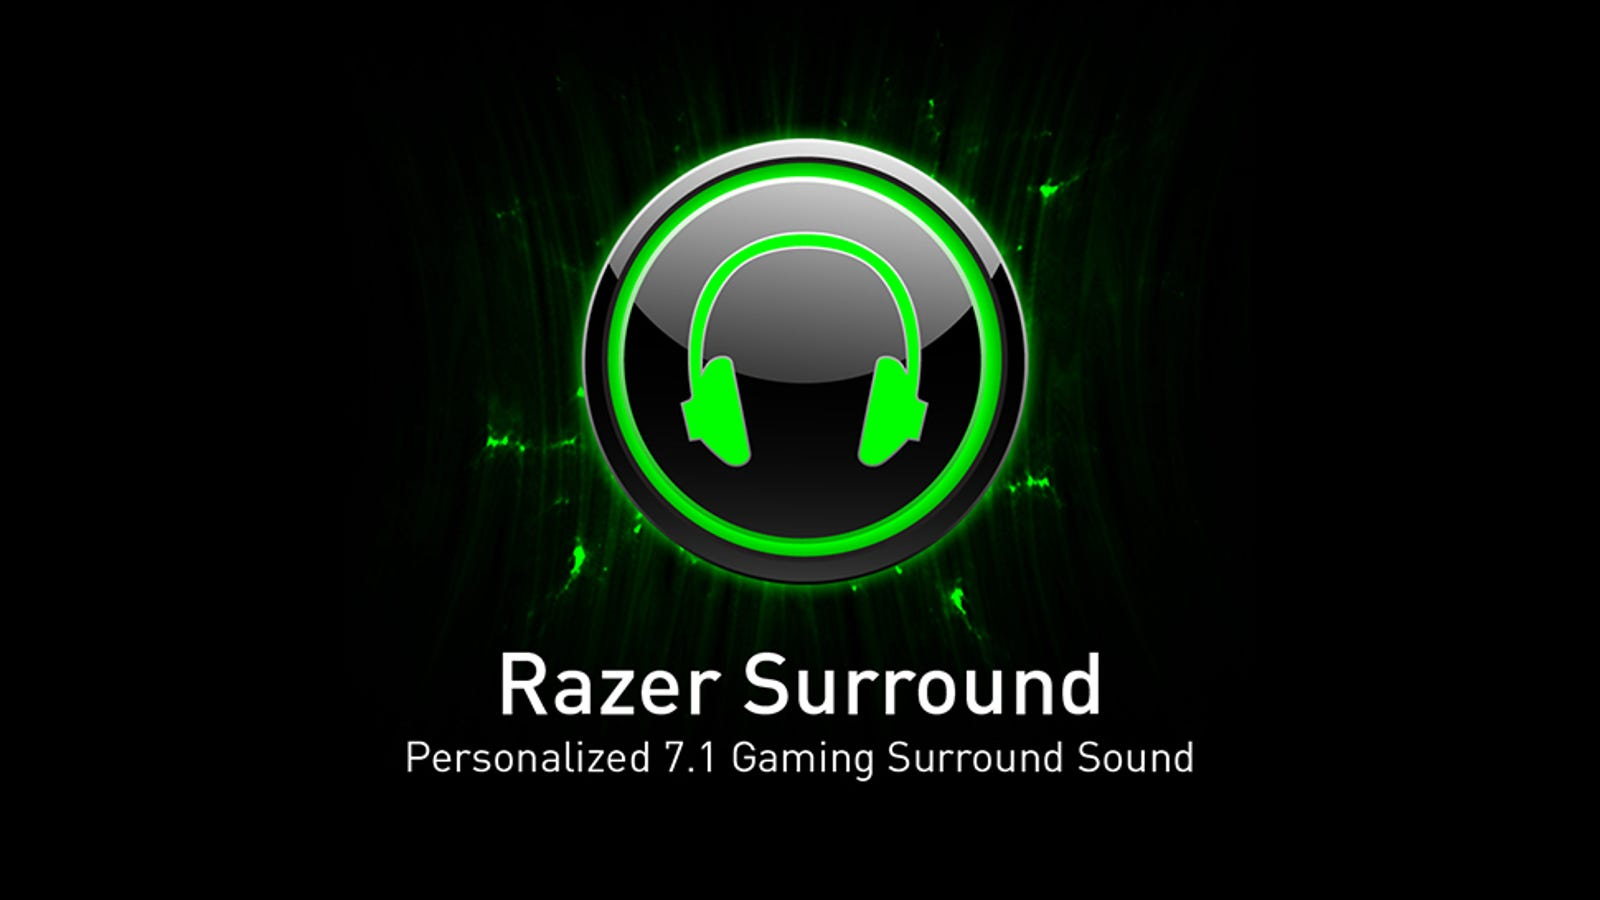 earbuds no microphone or remote - Razer's Surround Software Could Turn Regular Headphones Into 7.1 Cans